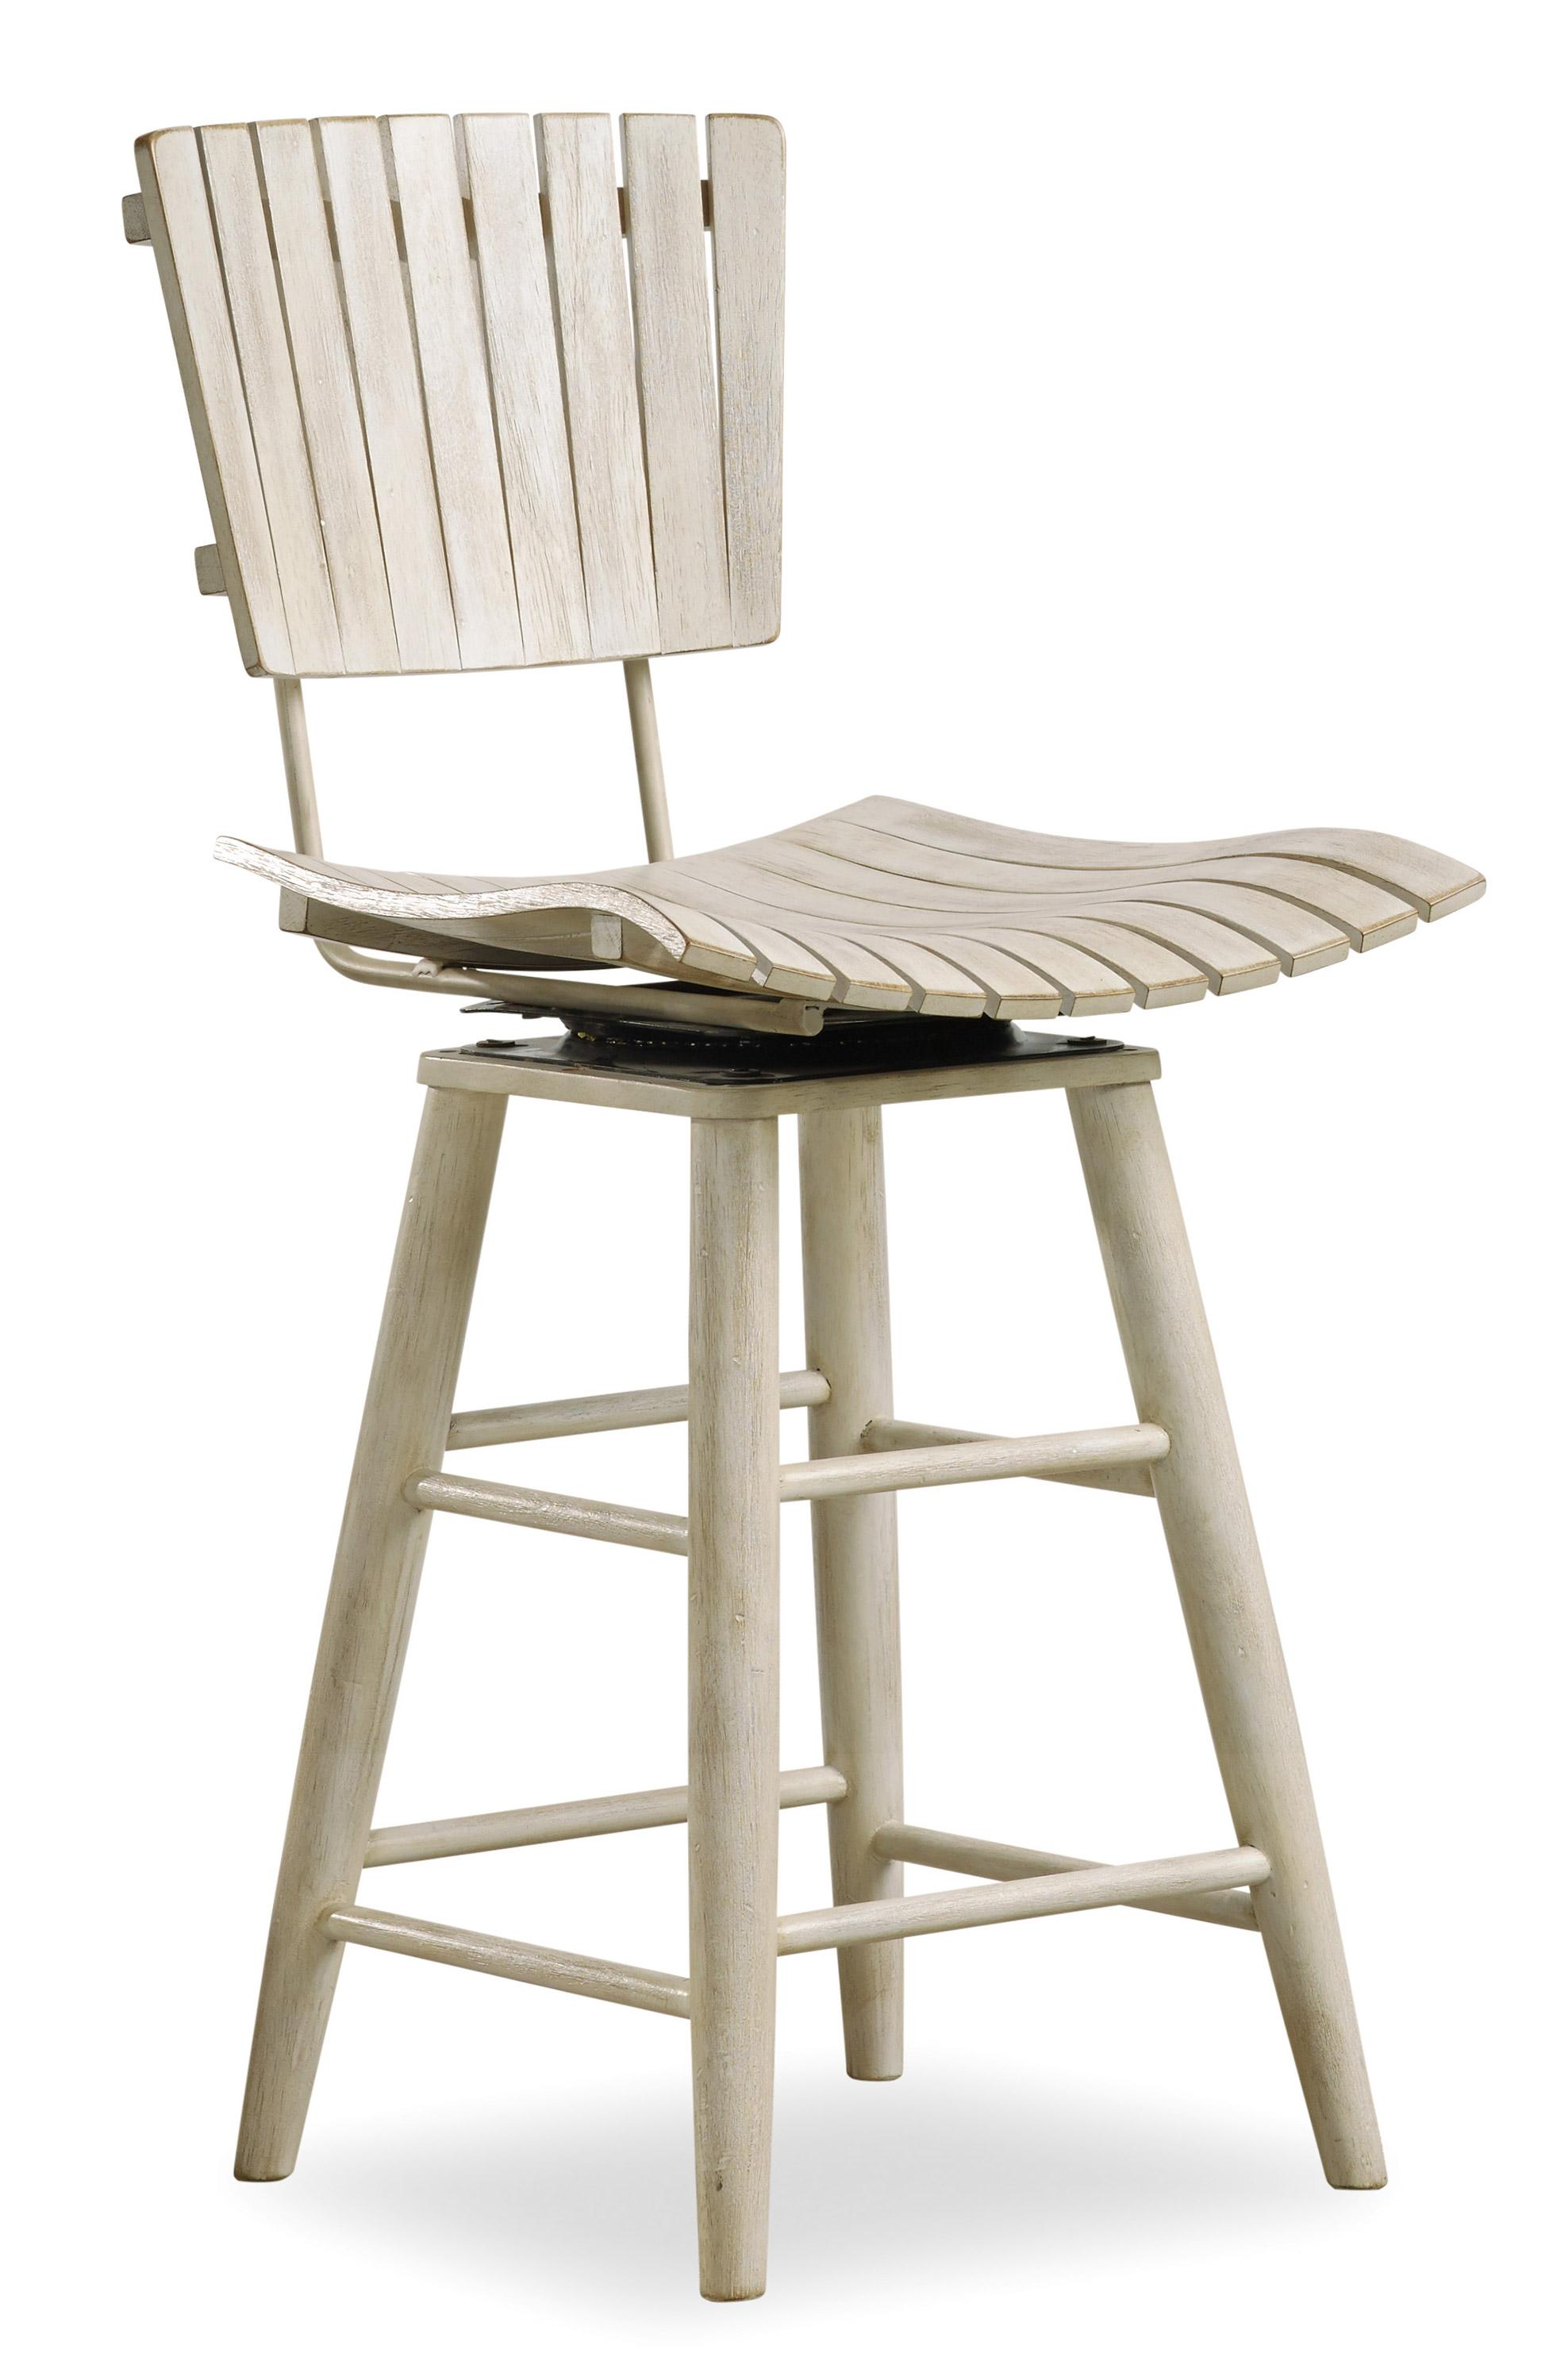 Hooker Furniture Sunset Point Casual Cottage Coastal 3  : products2Fhookerfurniture2Fcolor2Fsunset20point5325 752032B2x5325 75450 b2 from www.reedsfurniture.com size 1952 x 2999 jpeg 294kB